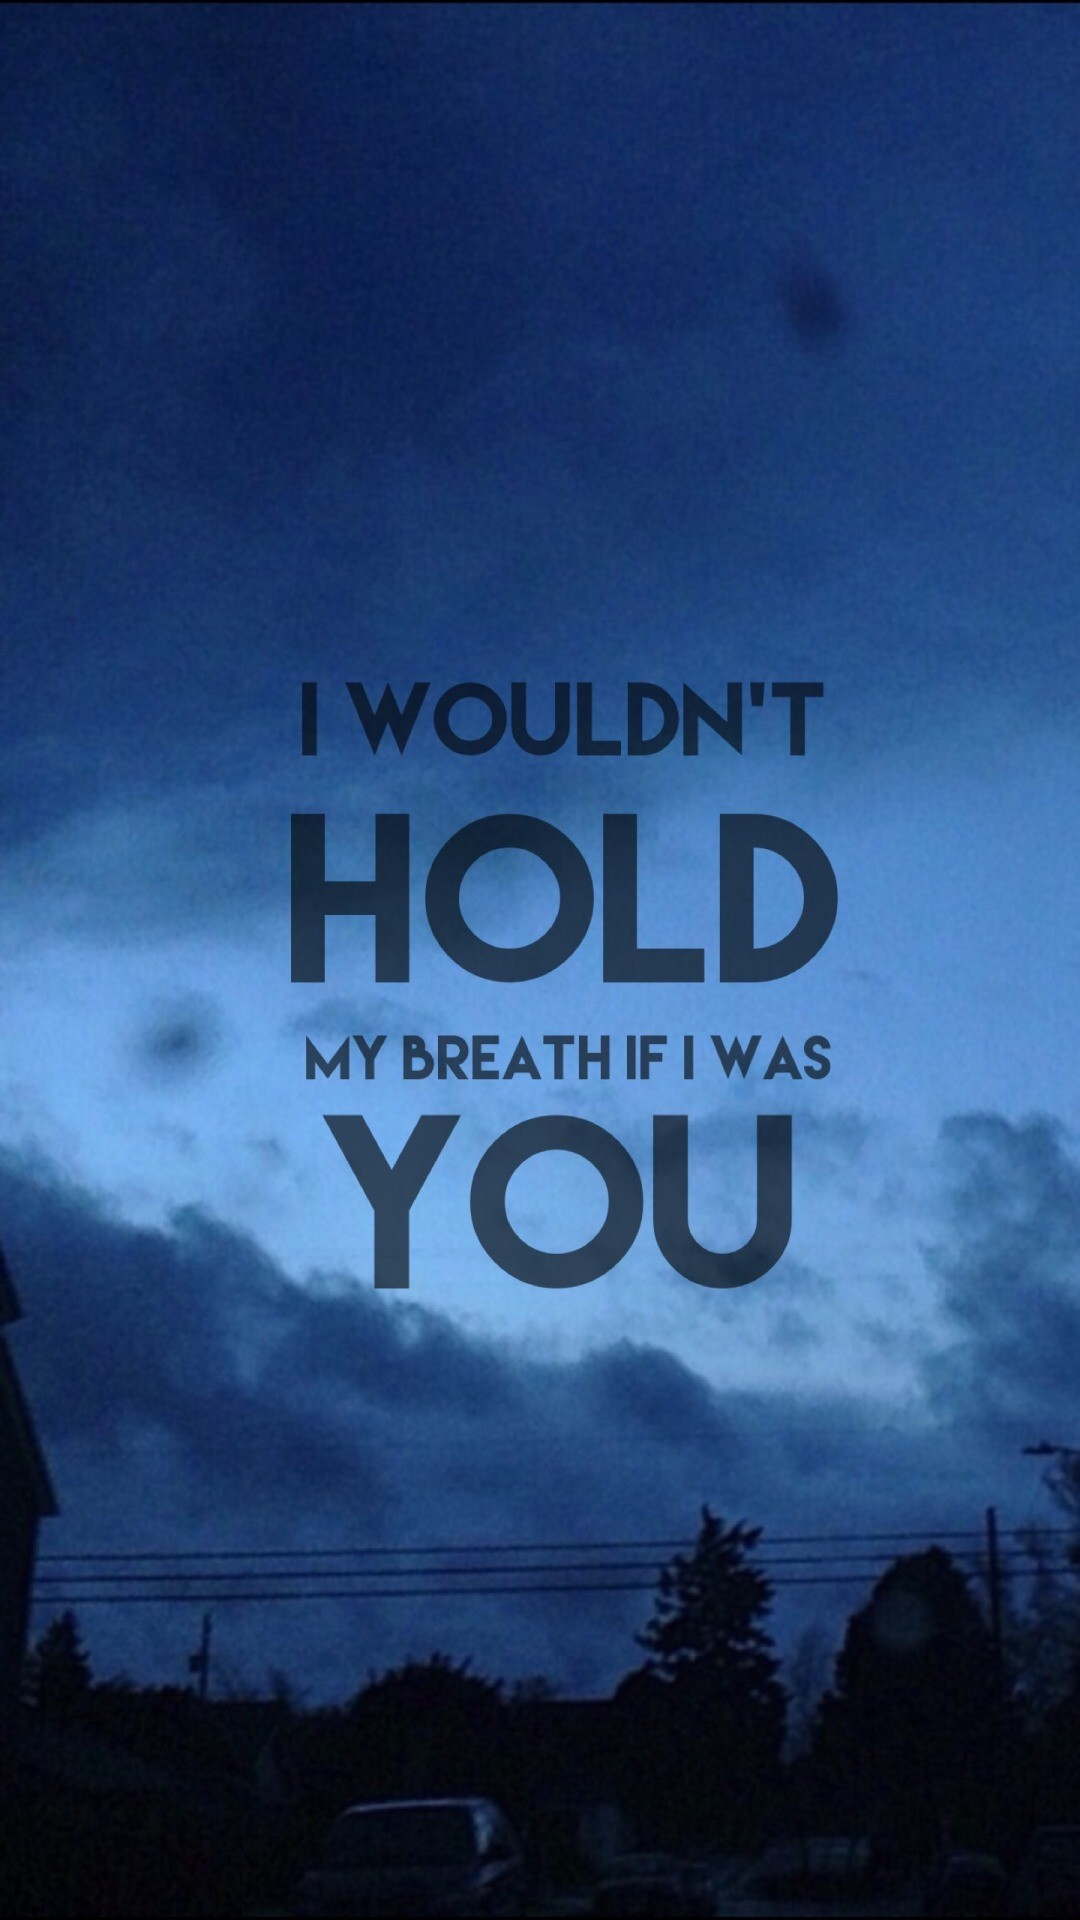 Bring me the horizon wallpaper lyrics